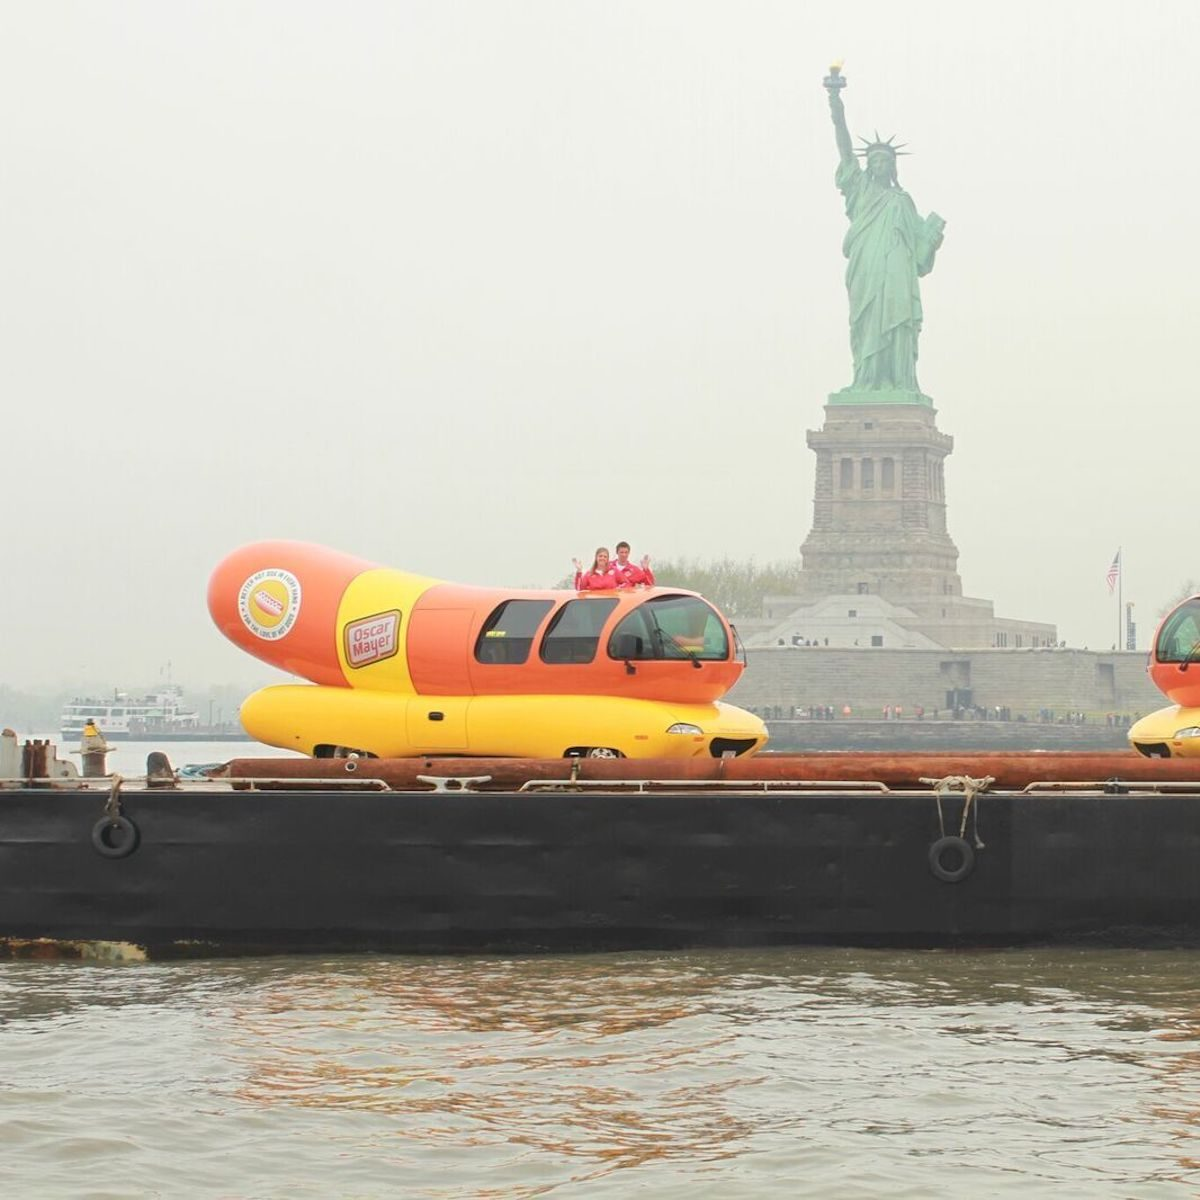 wienermobile and the statue of liberty